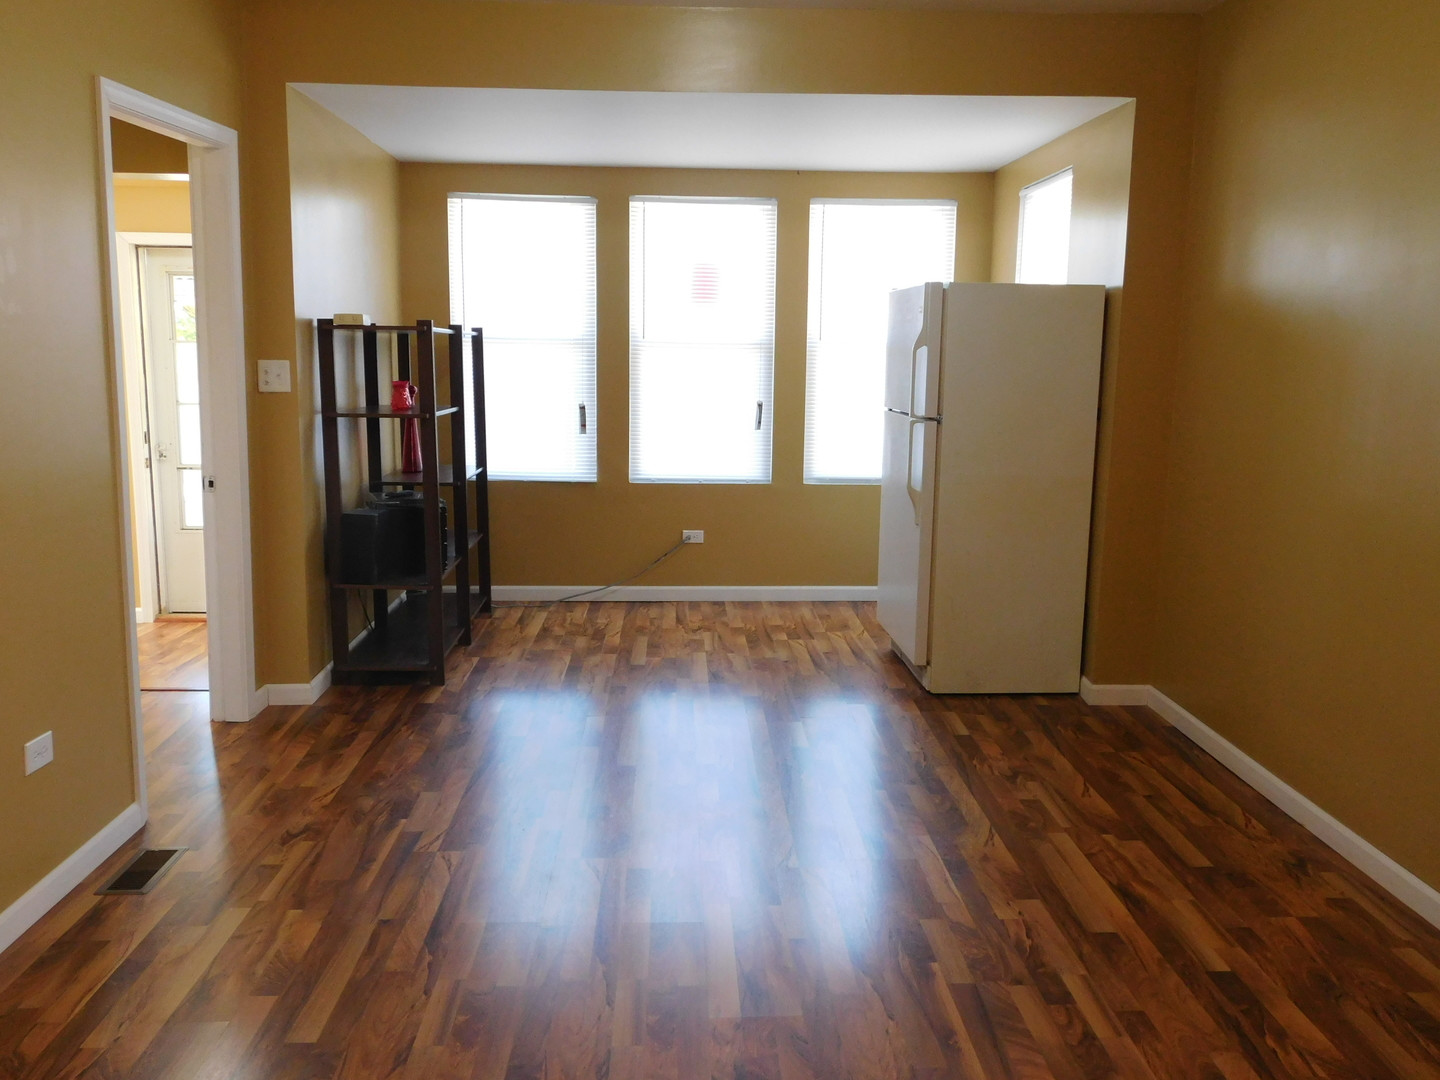 hardwood flooring sudbury ontario of for all your real estate needs property search within 4 21